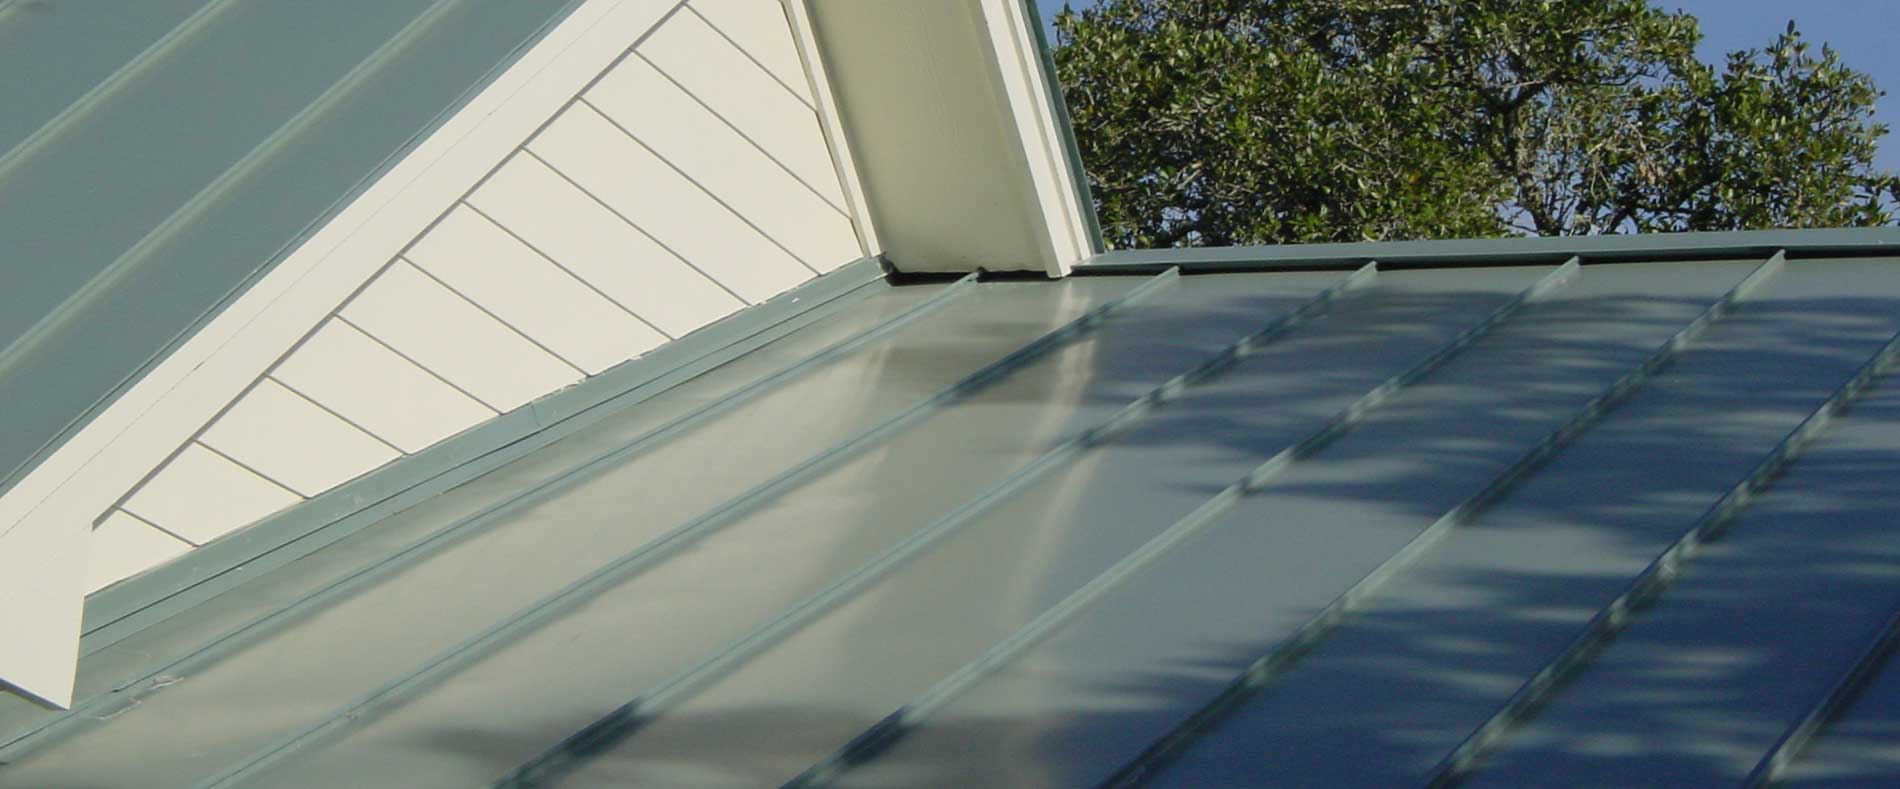 Metal Roofing<br/>Plano, TX & The Woodlands, TX